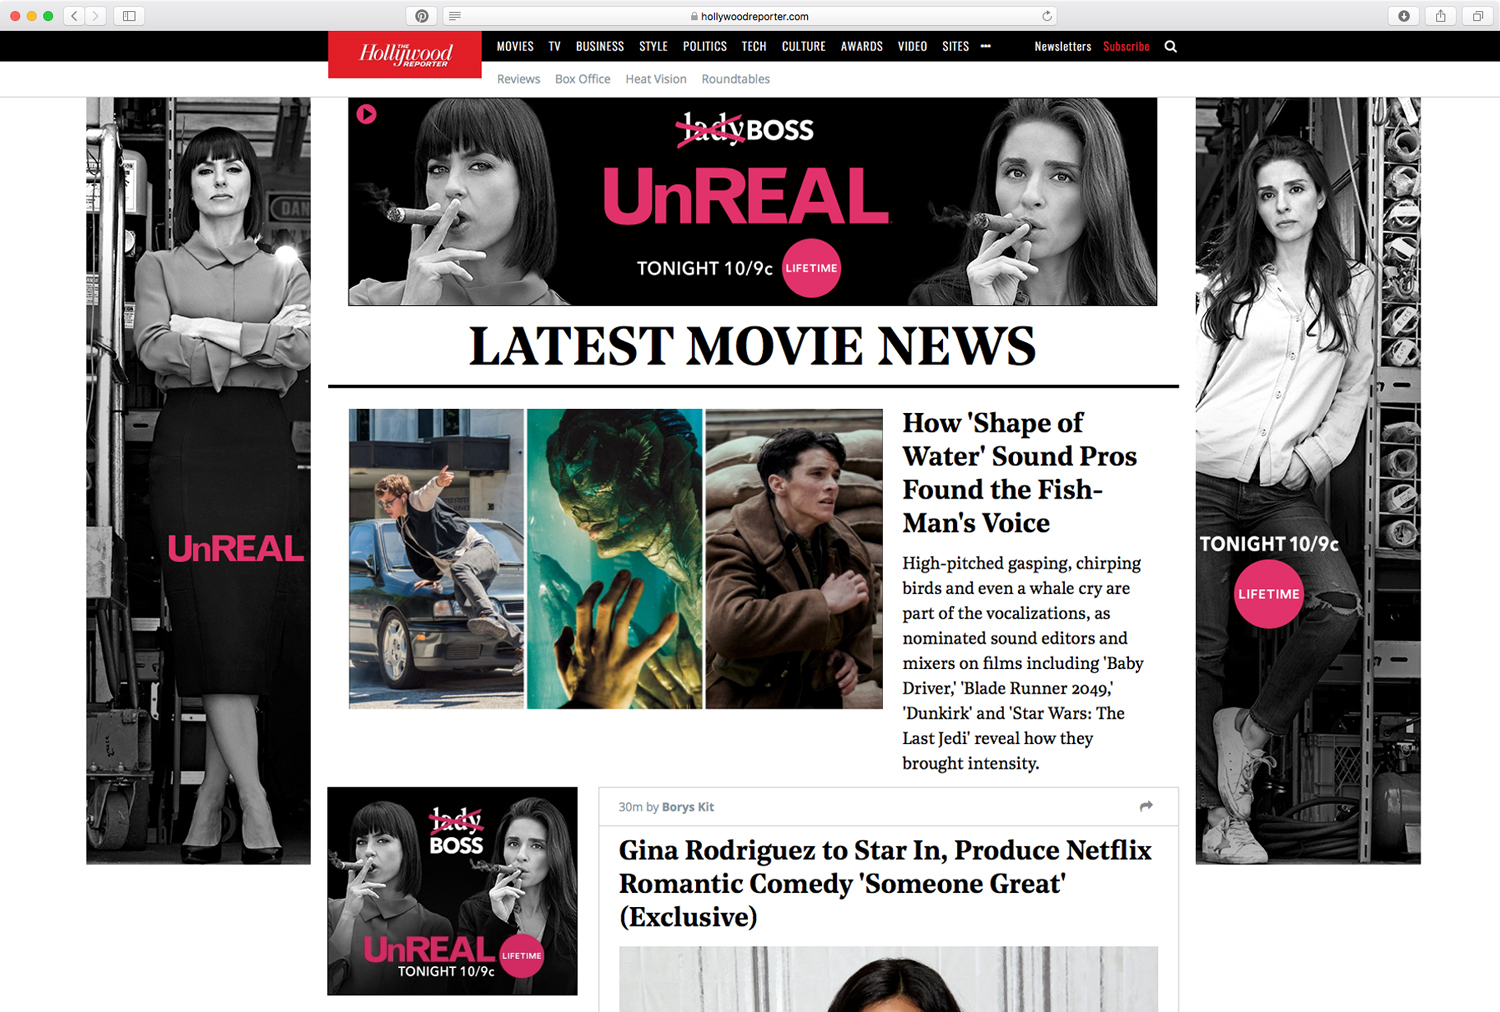 The Hollywood Reporter - Takeover